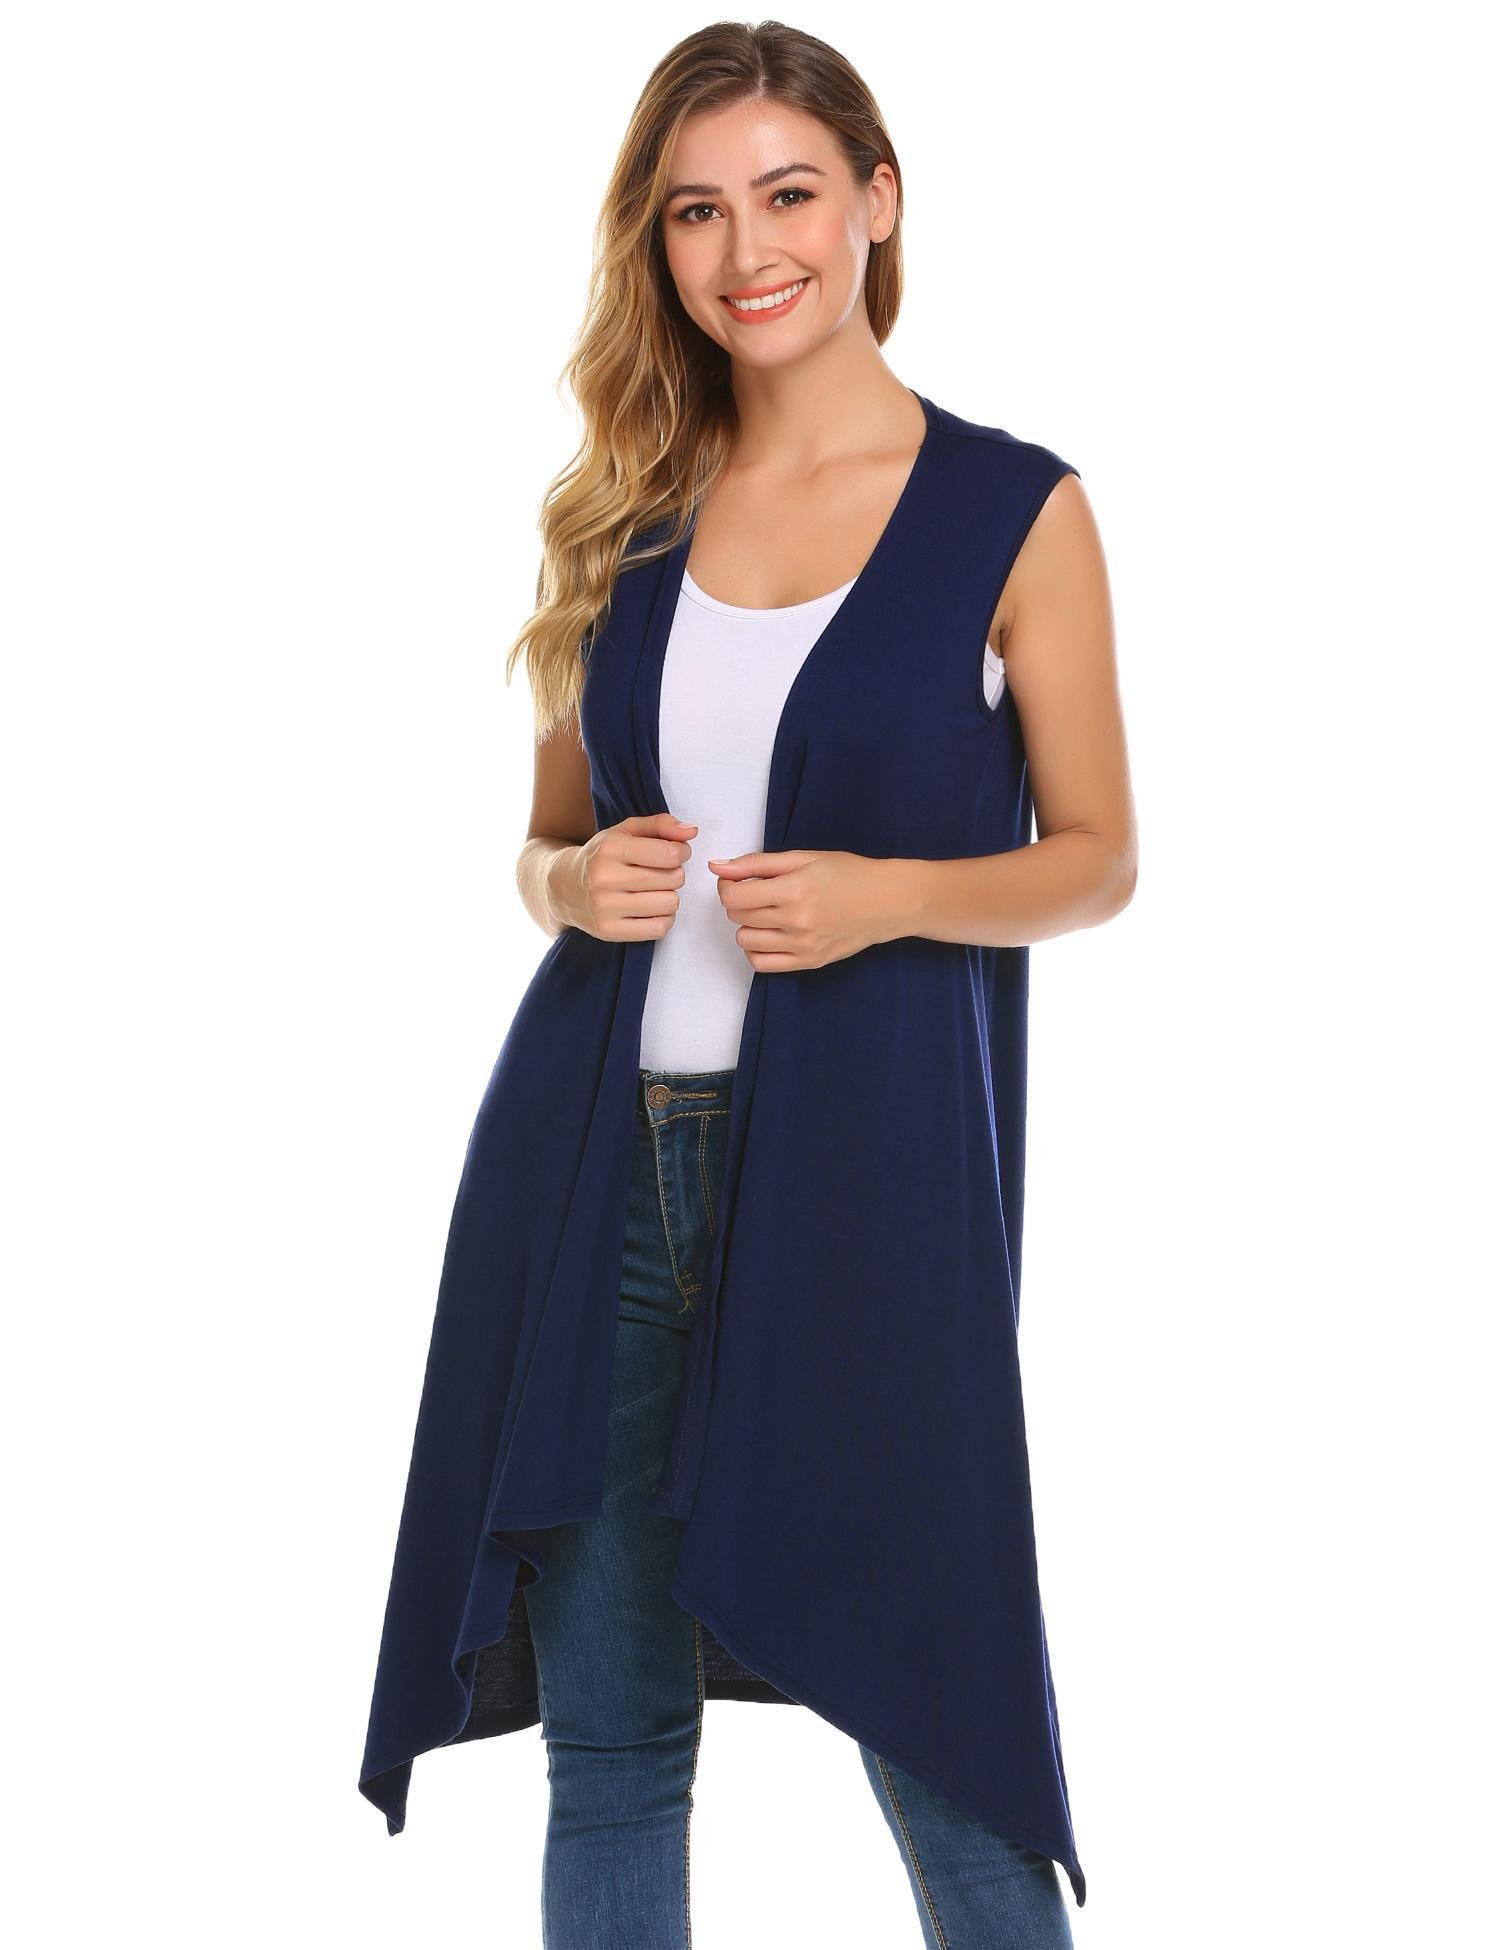 Grabsa Women's Solid Color Open Front Sleeveless Long Drape Cardigan Vest Navy Blue XL